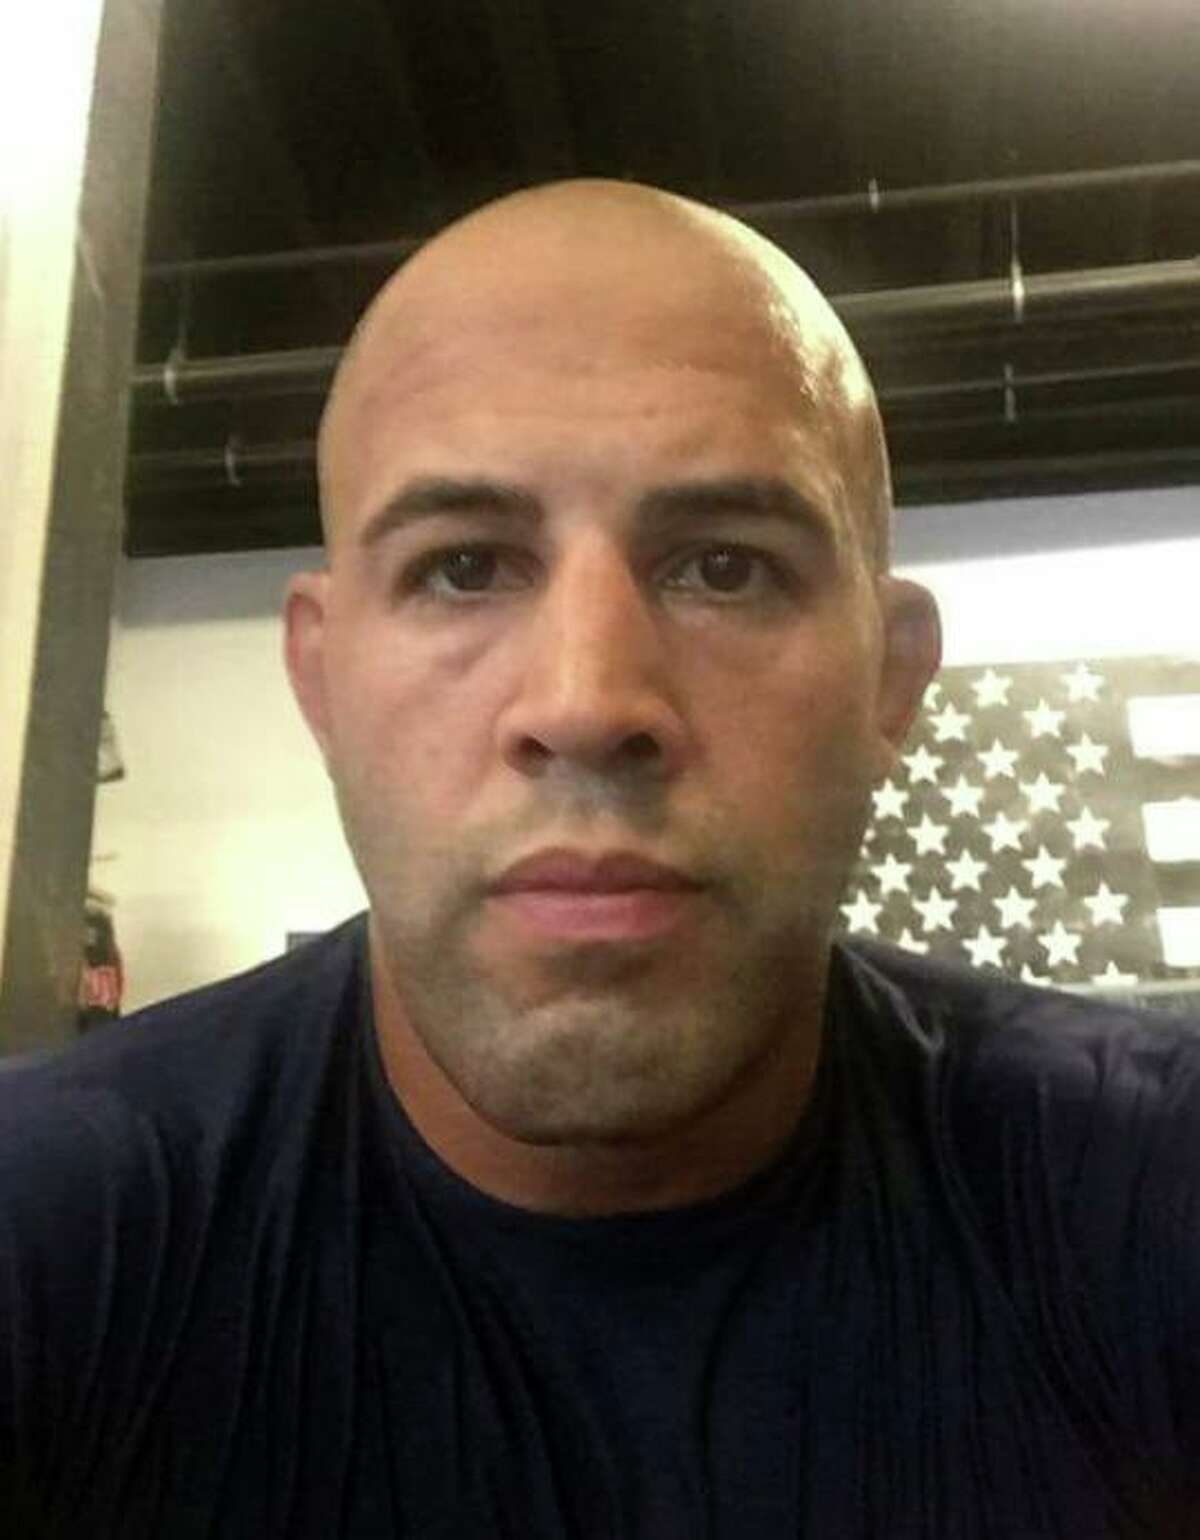 Trumbull Police Officer Michael Gonzalez, 40, has been charged with third-degree assault, second-degree threatening and disorderly conduct.